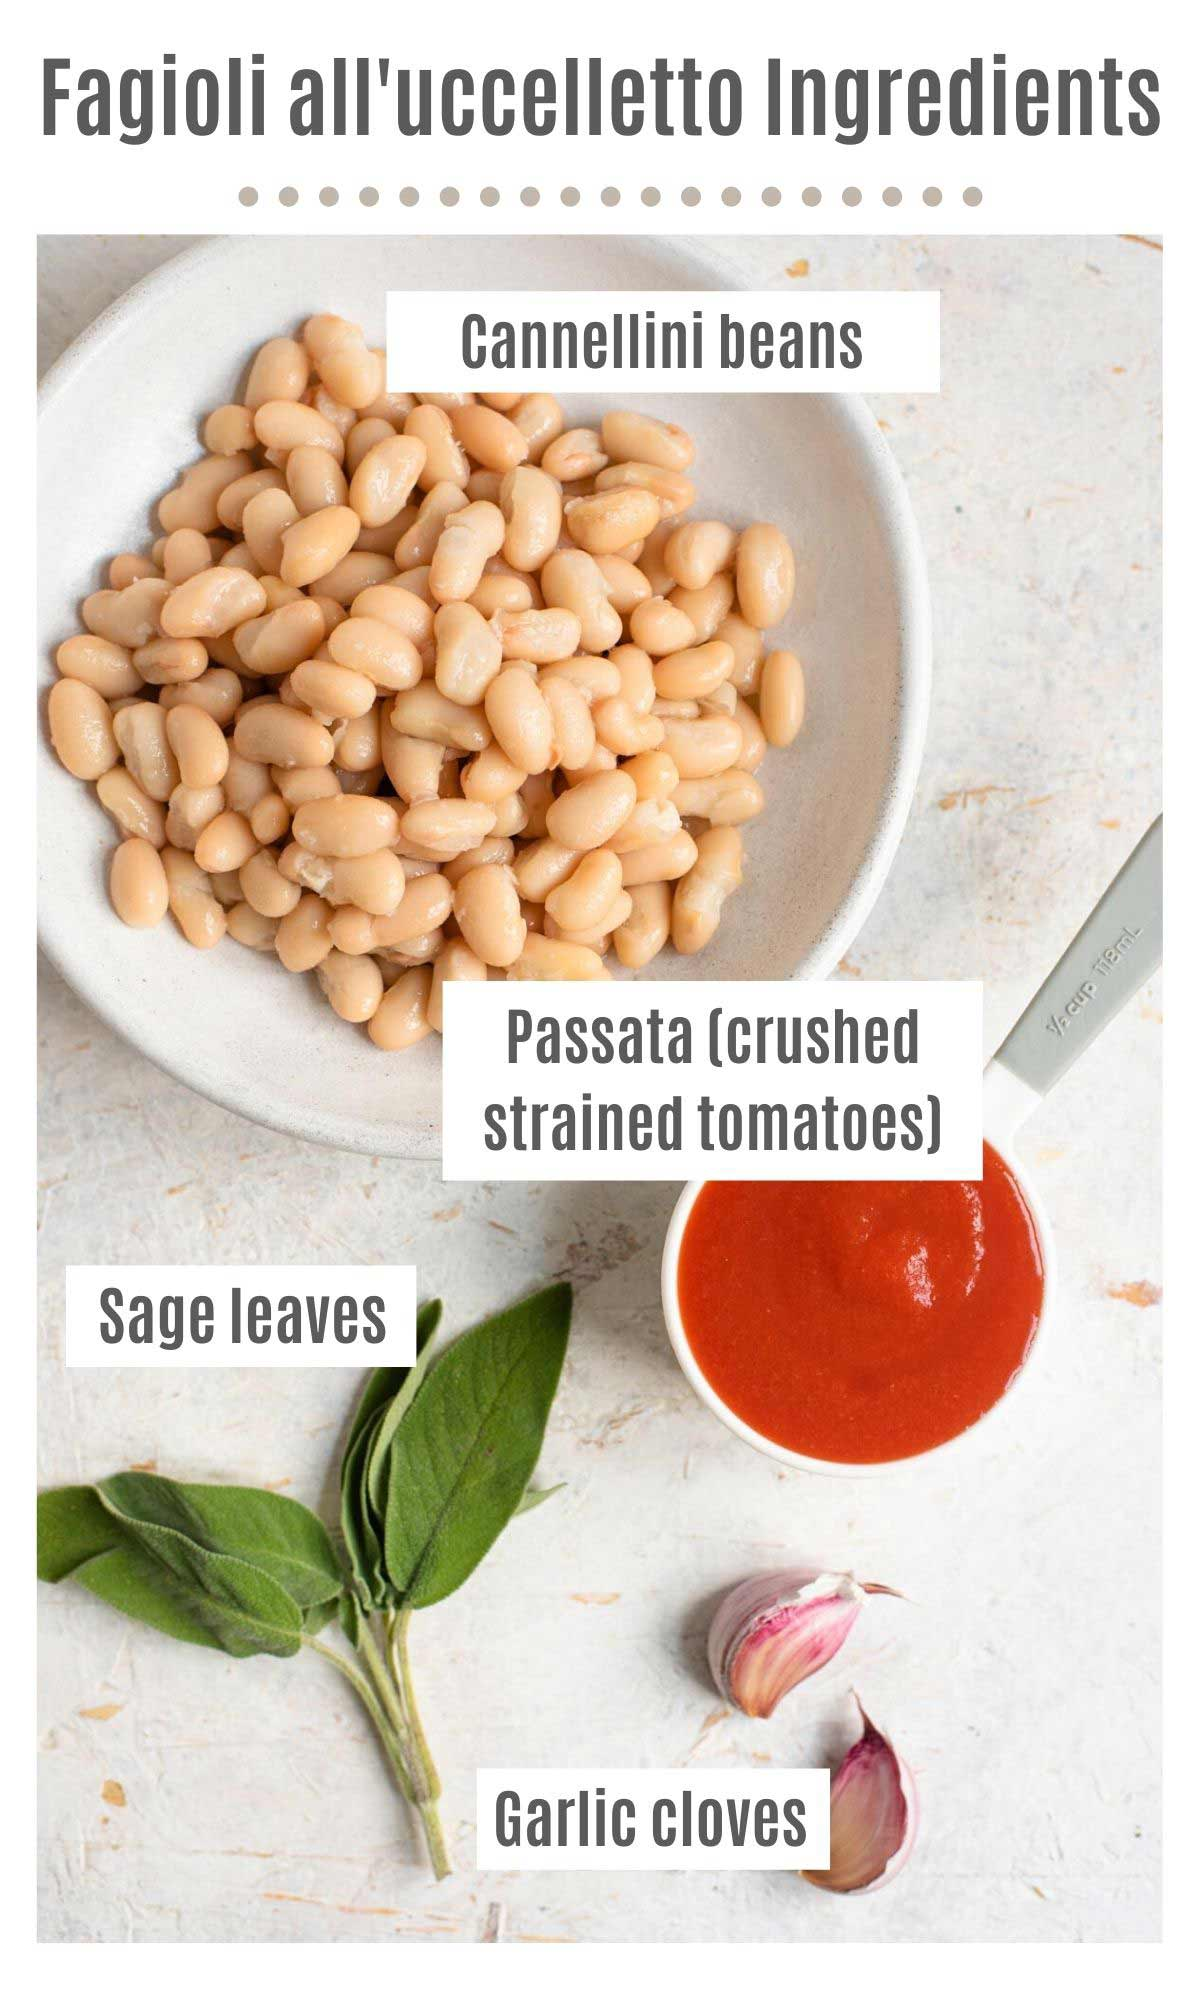 An overhead shot of all the ingredients you need to make fagioli all'uccelletto